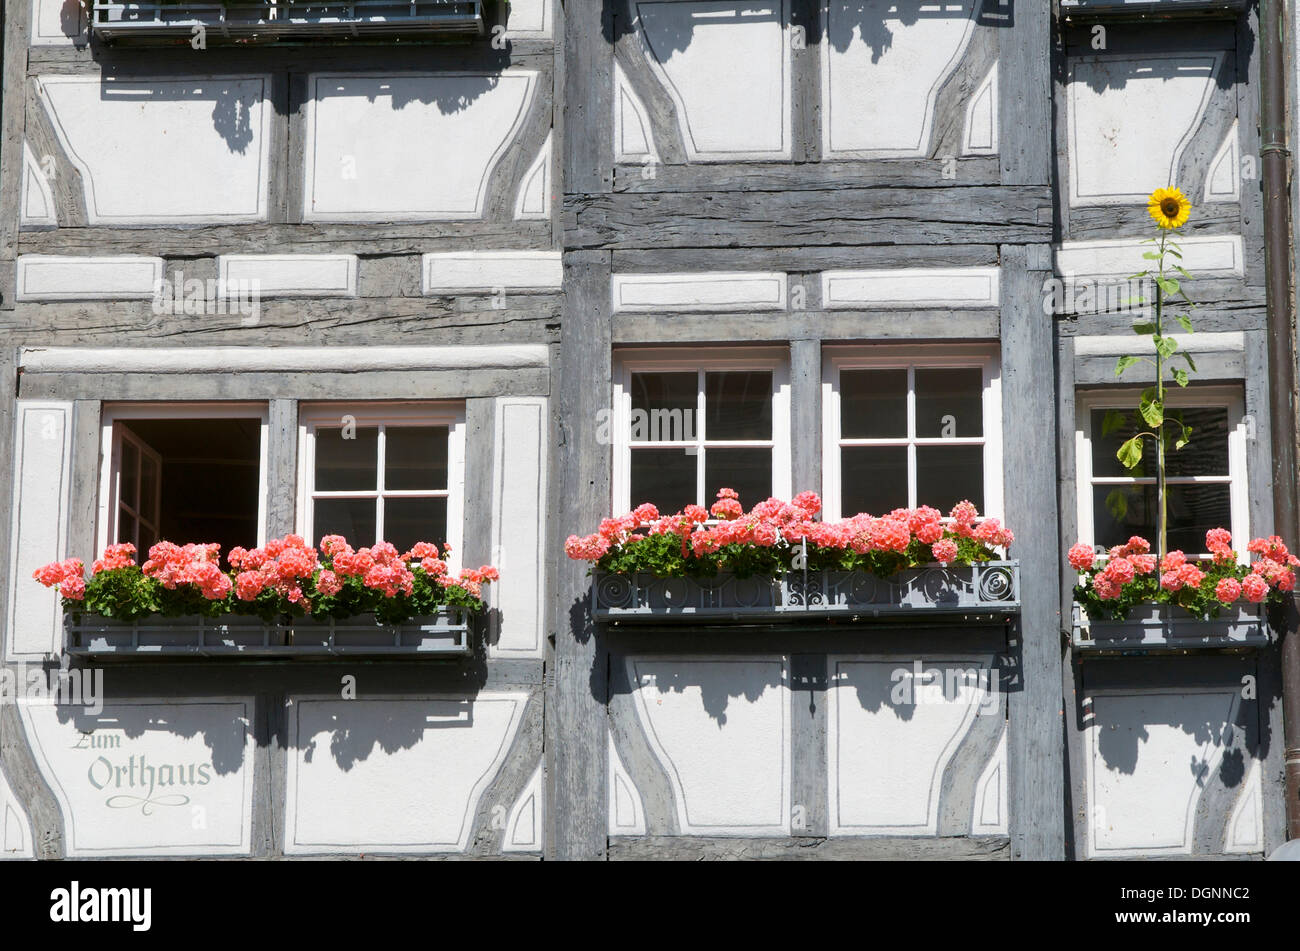 Half-timbered building, Maximilianstrasse street in the old town, Lindau, Bavaria - Stock Image